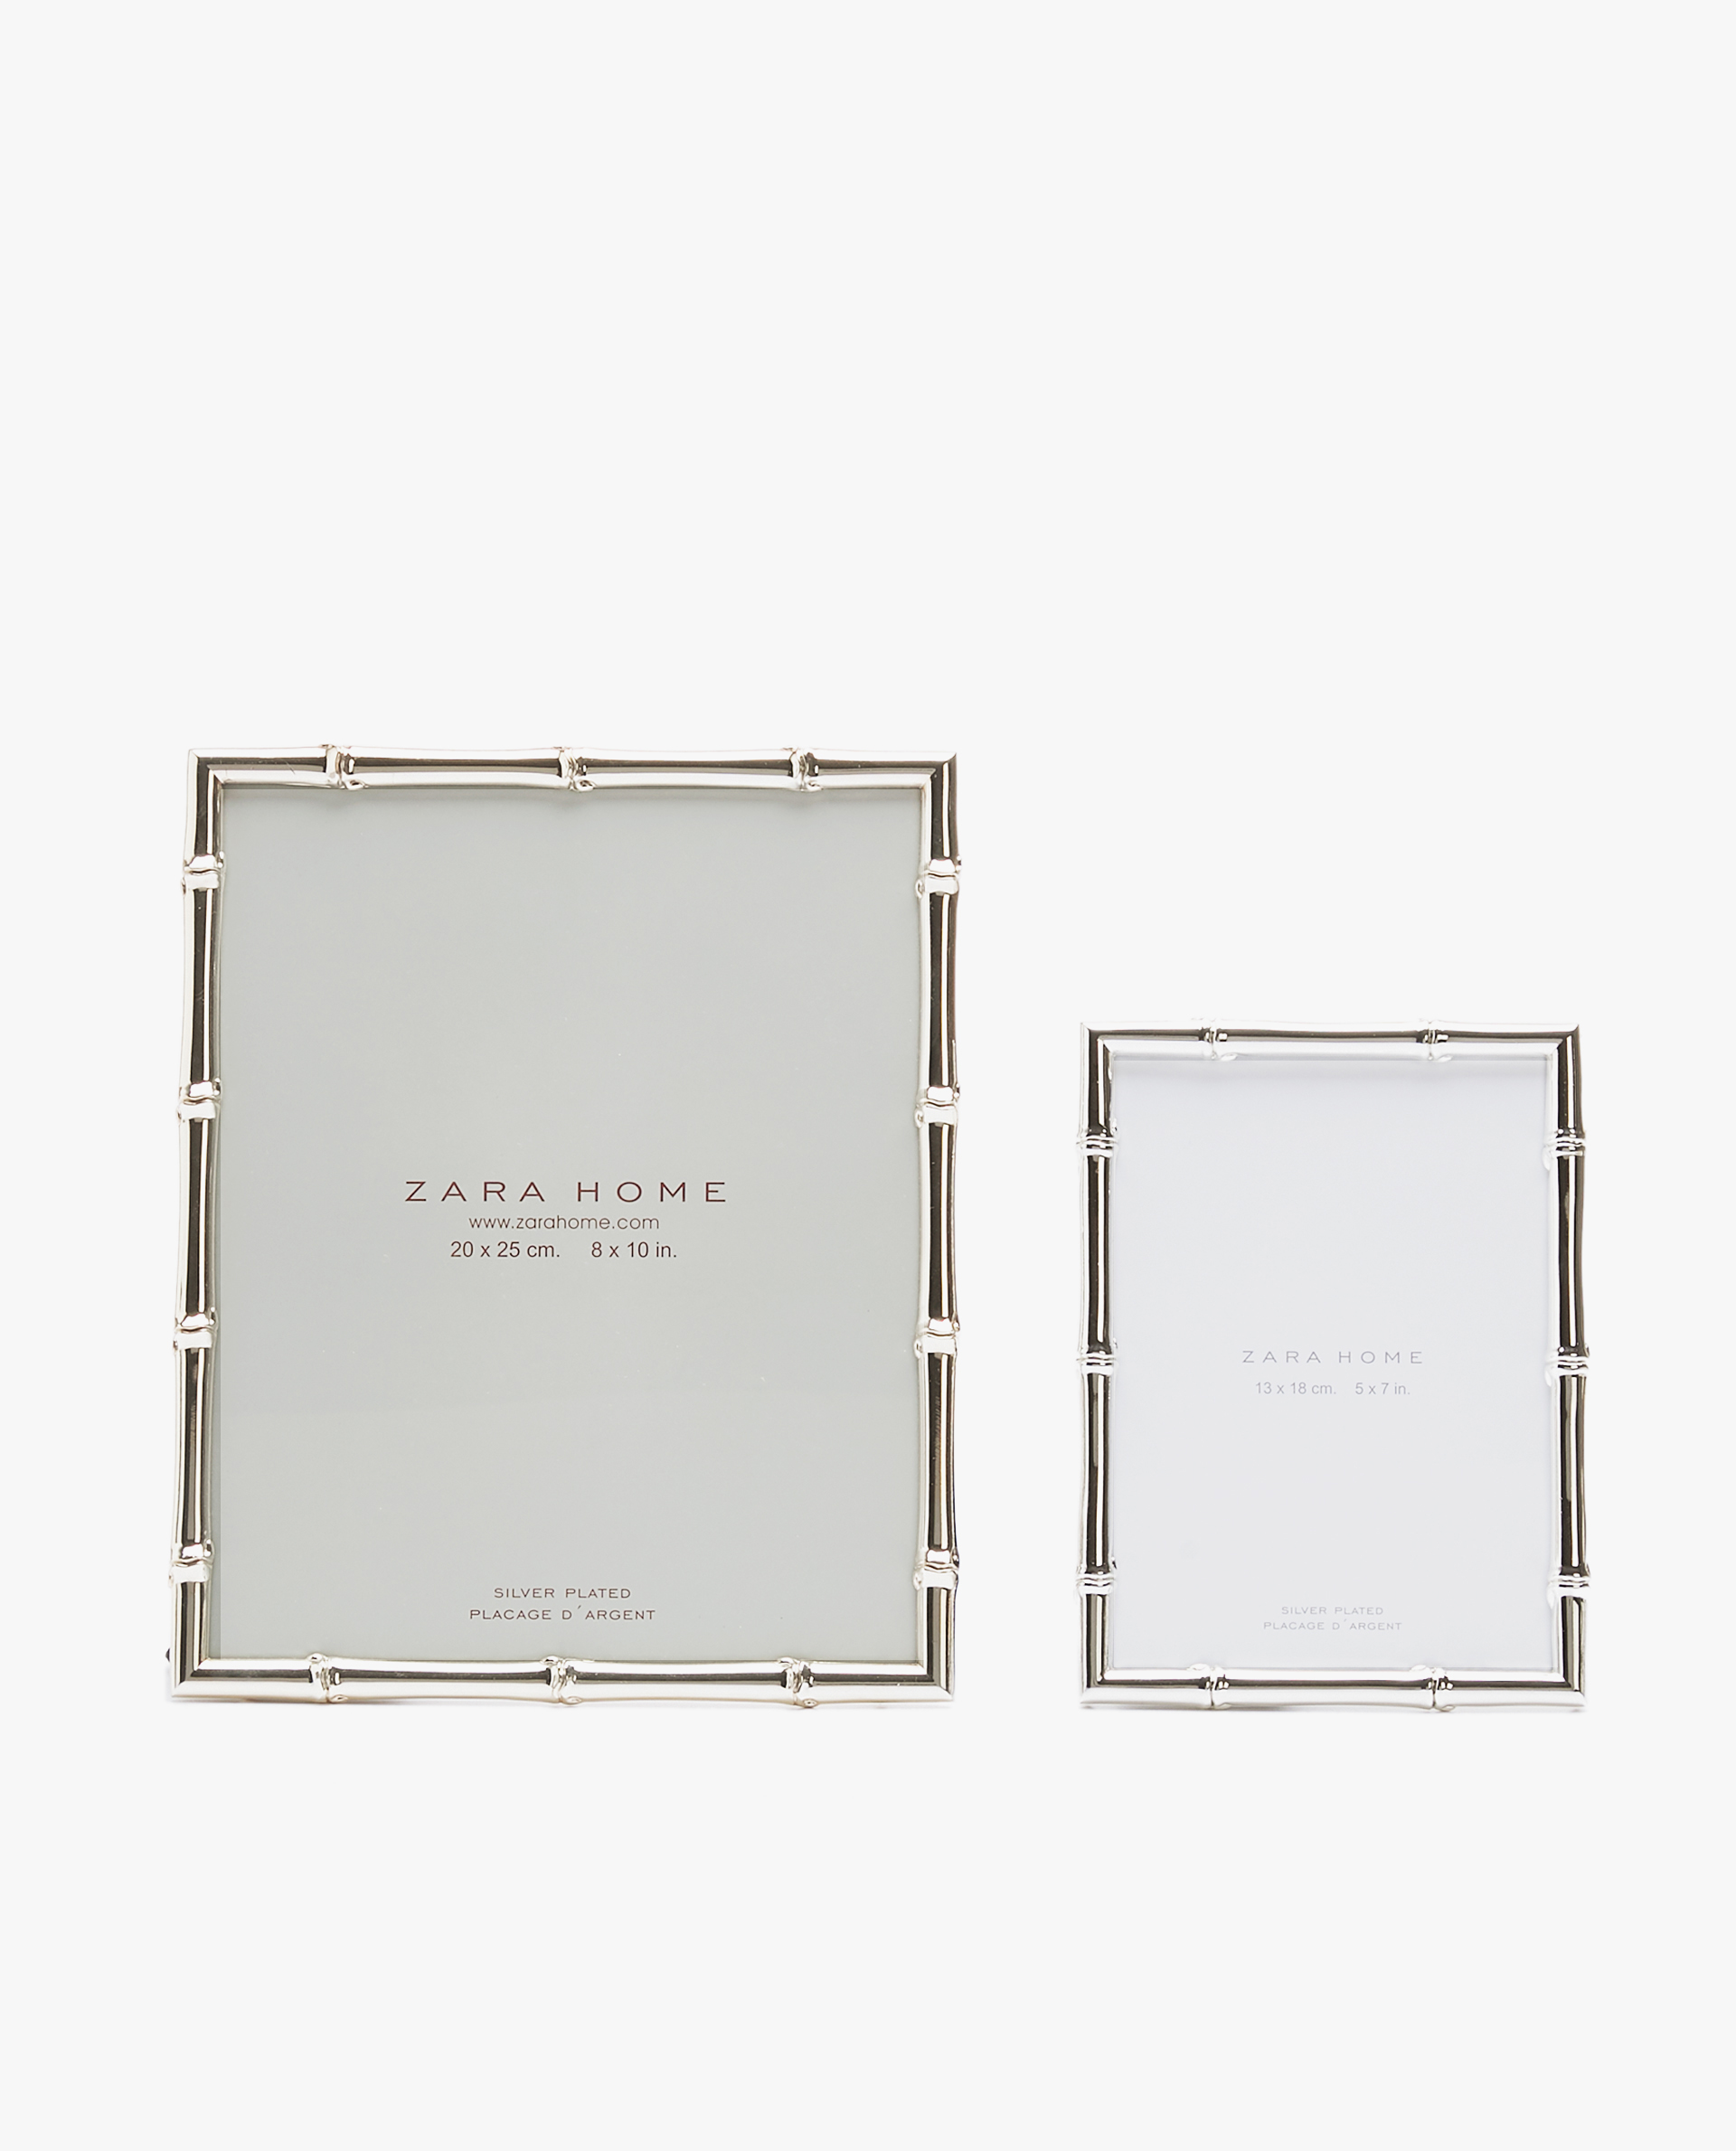 81688413797b BAMBOO-SHAPED SILVER METAL FRAME - See all - PHOTO FRAMES ...